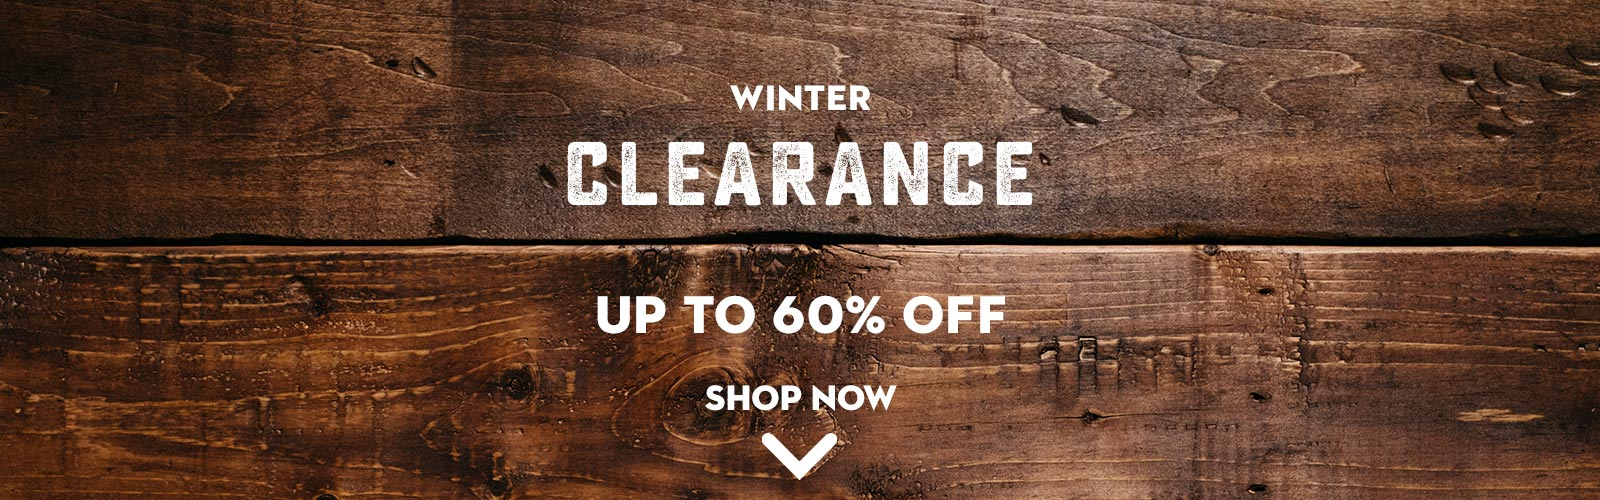 Winter Clearance on WildBounds